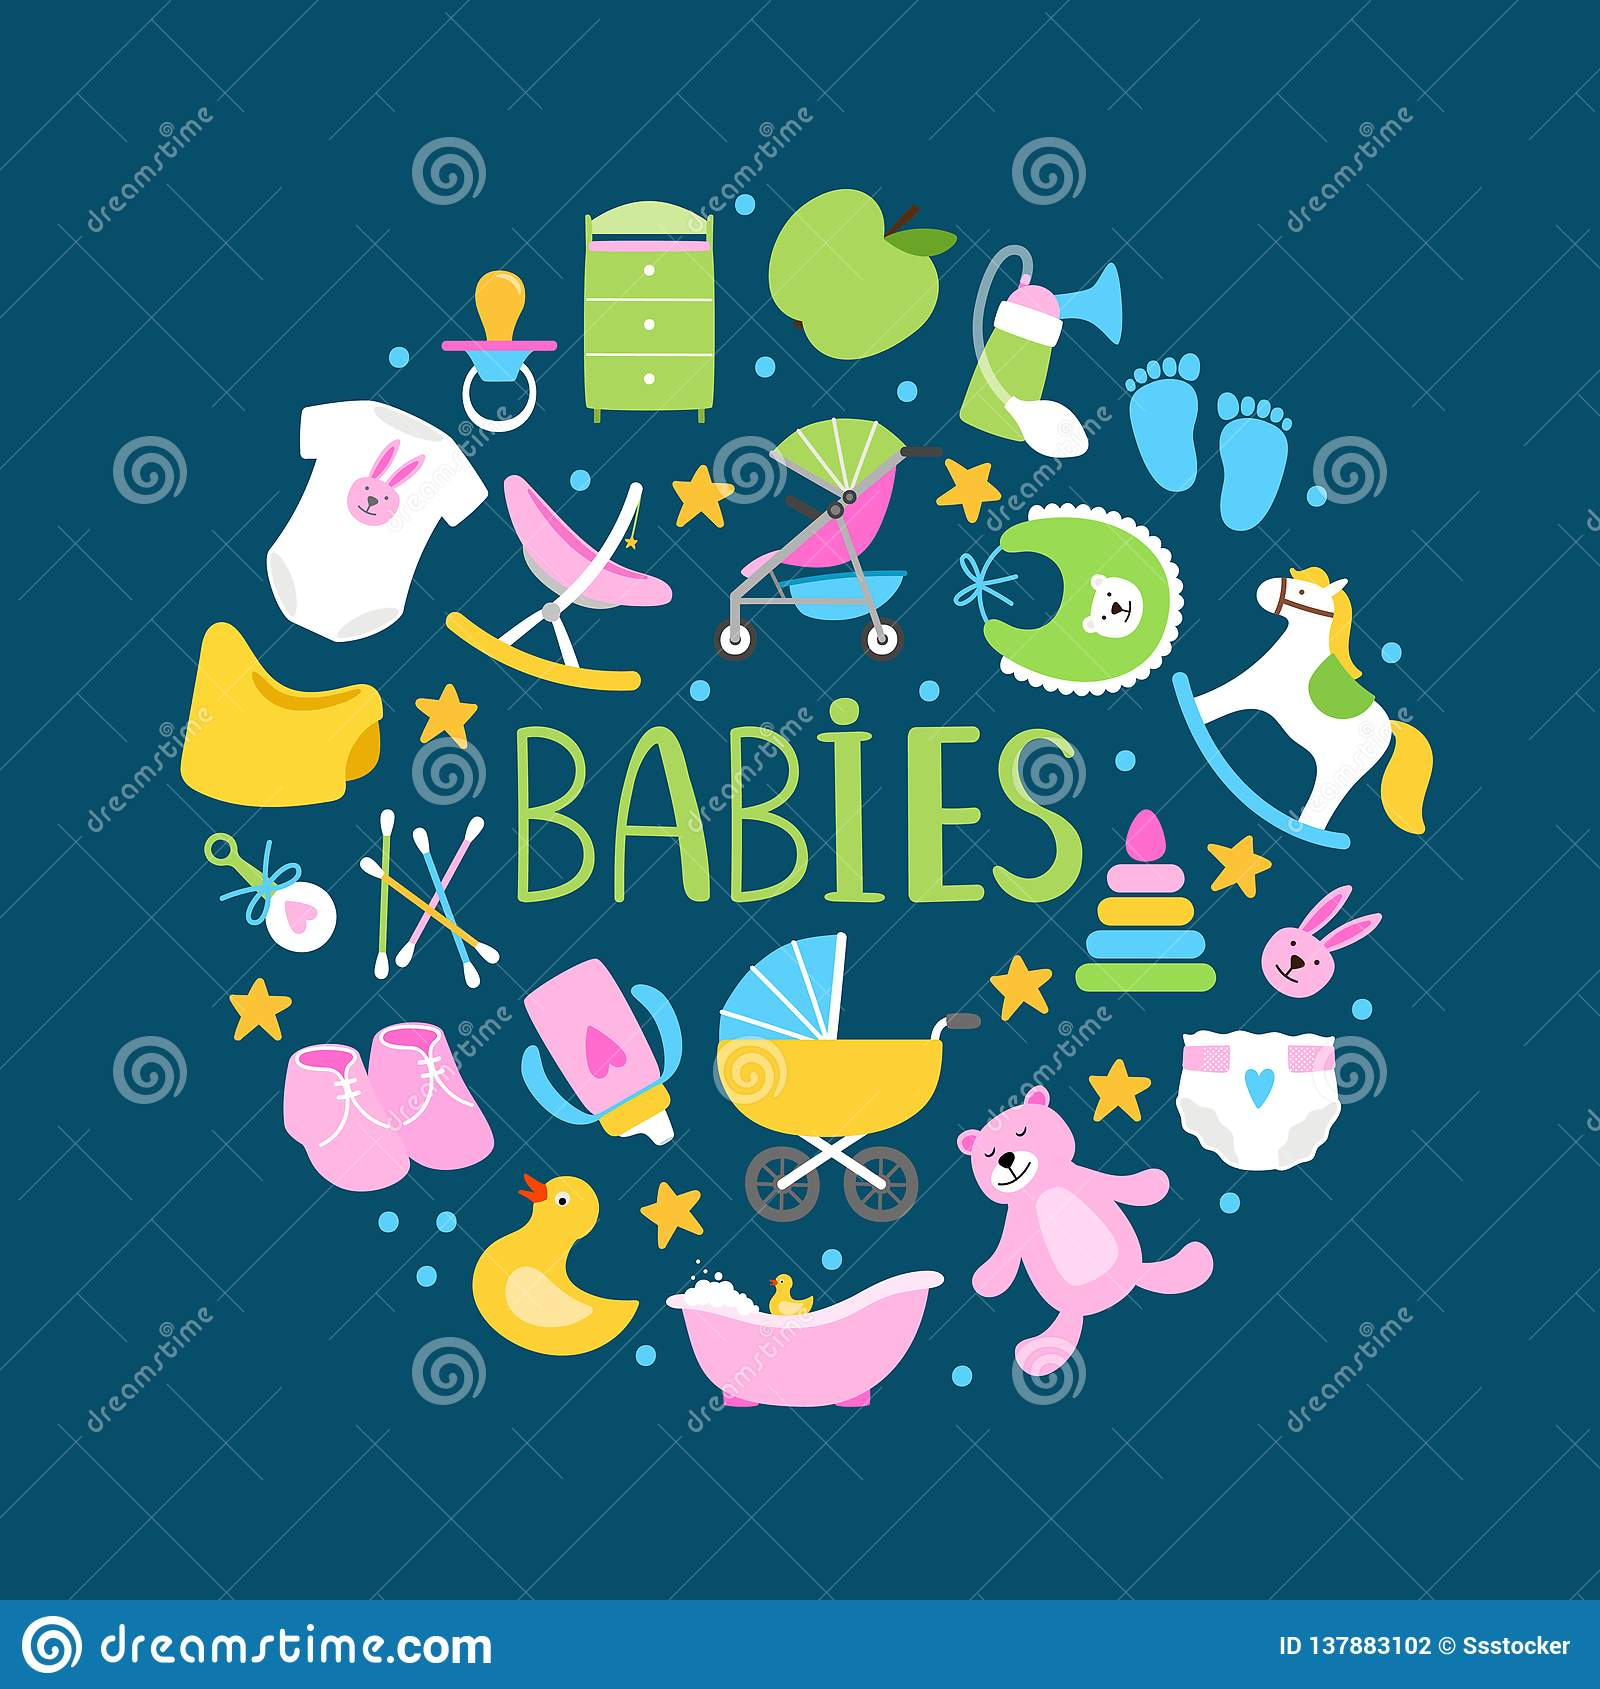 Round banner or background with cute babies accessorises